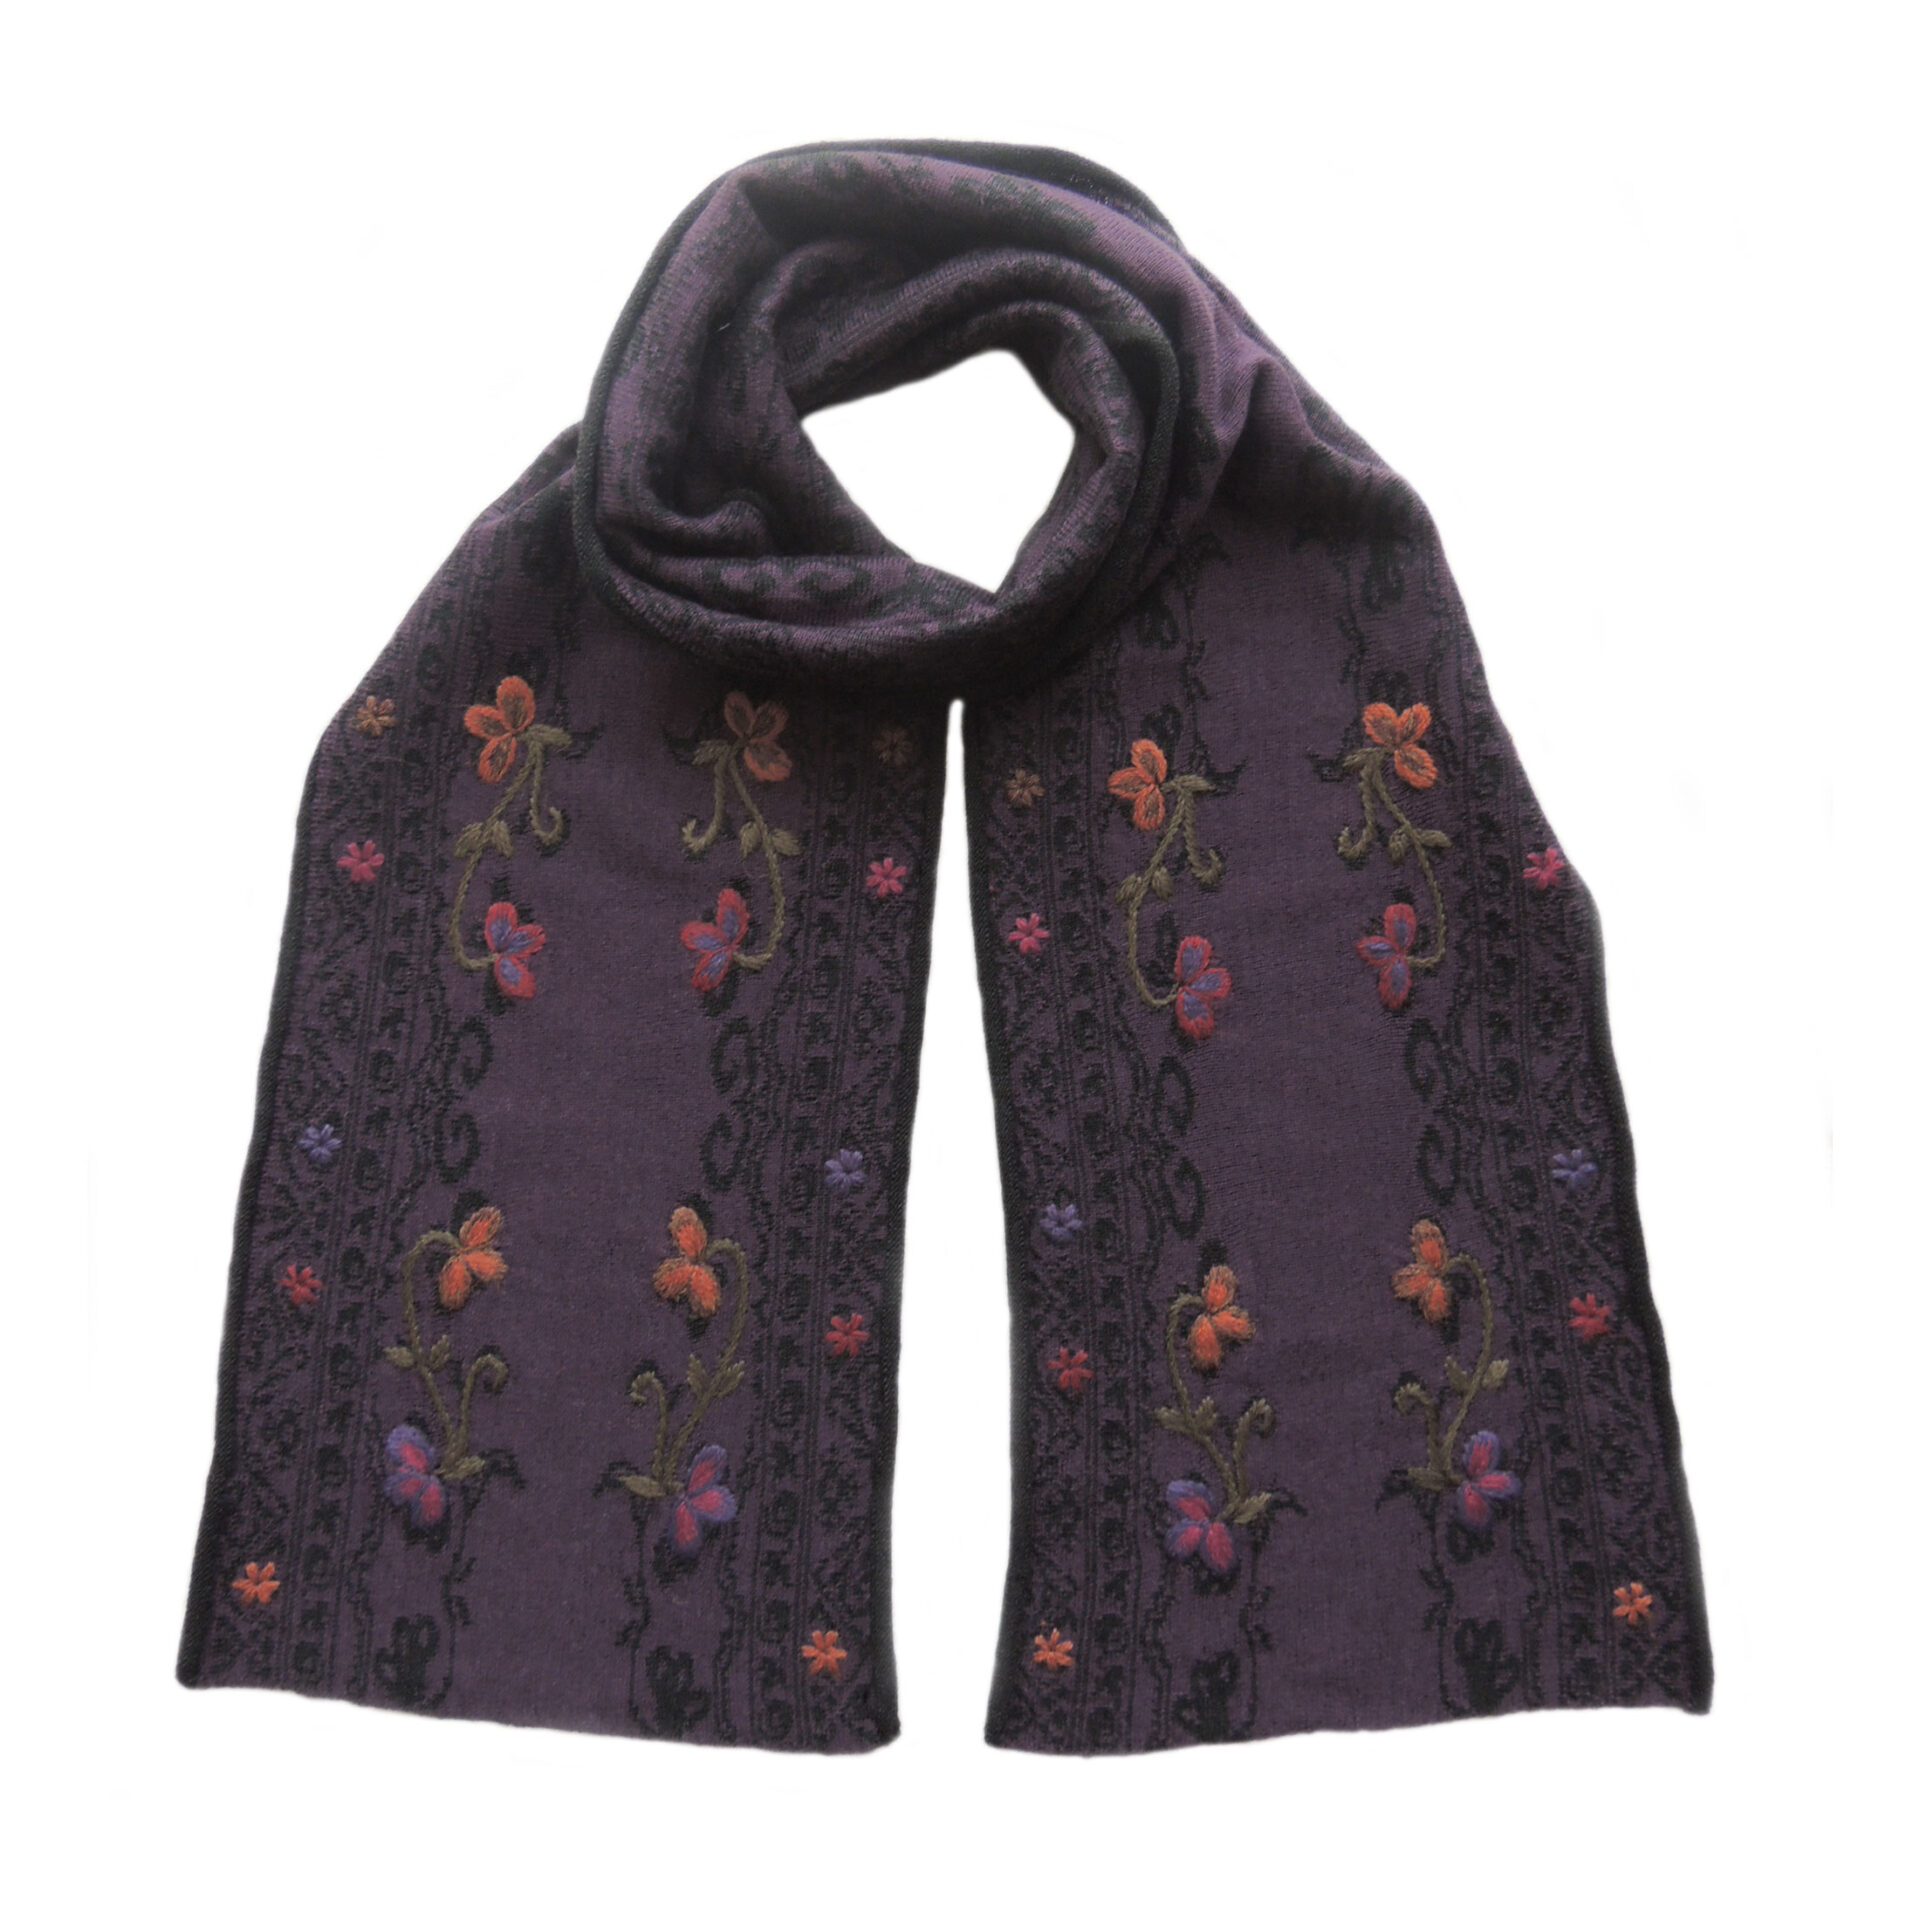 Women's scarf jacquard knitted with hand embroidered details. Scarf blue with black pattern alpaca blend scarf